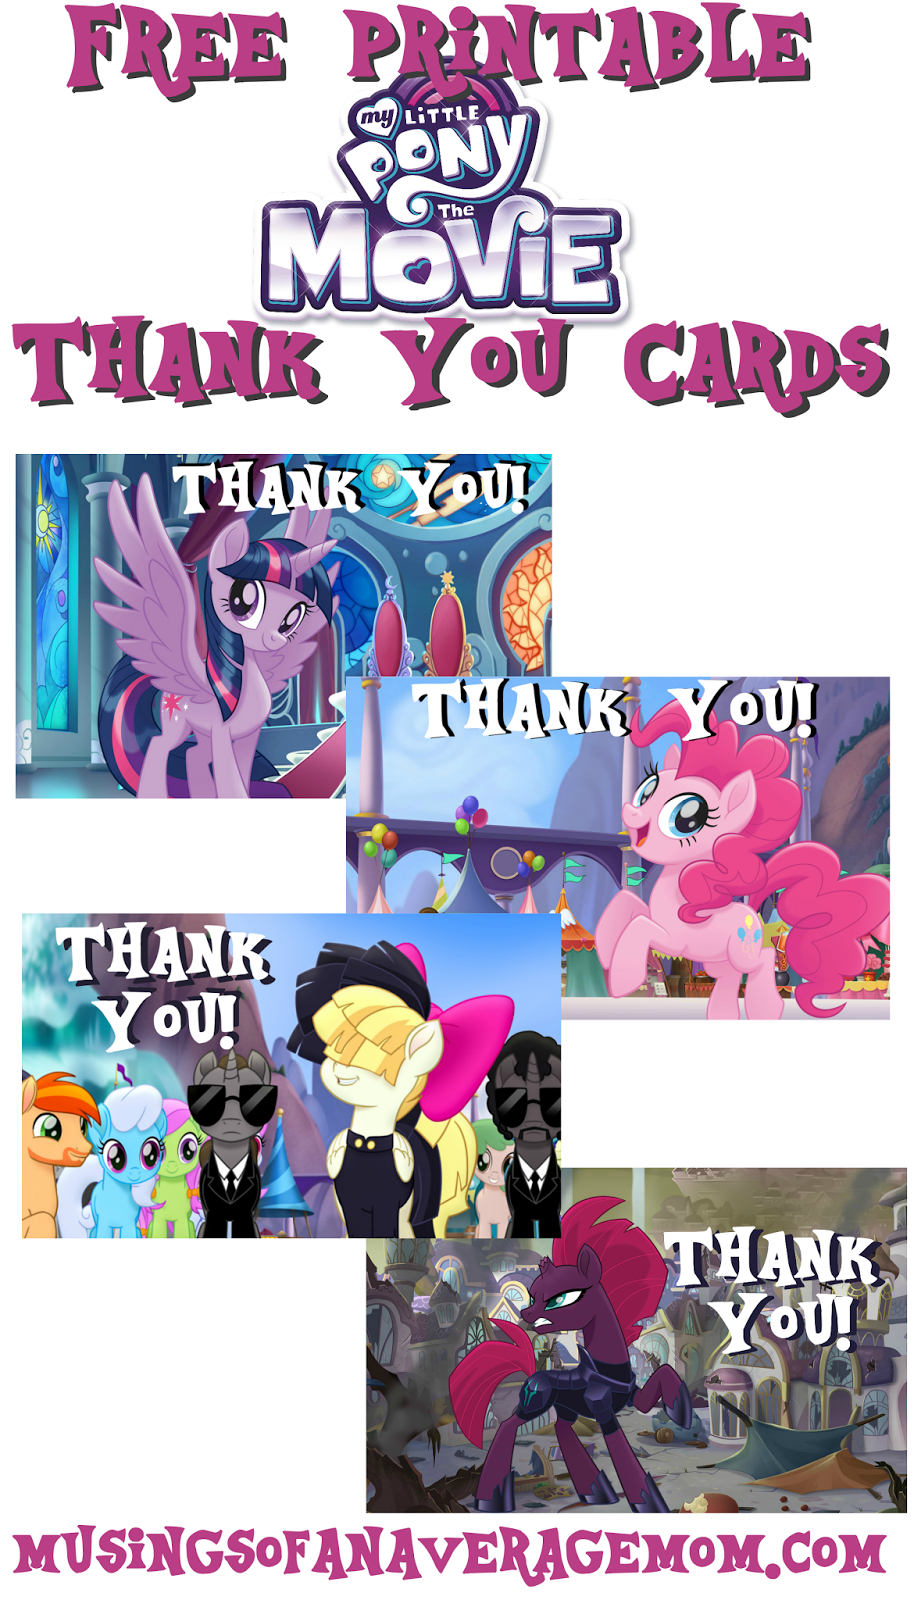 Musings Of An Average Mom: My Little Pony Movie Thank You Cards - Free Printable My Little Pony Thank You Cards